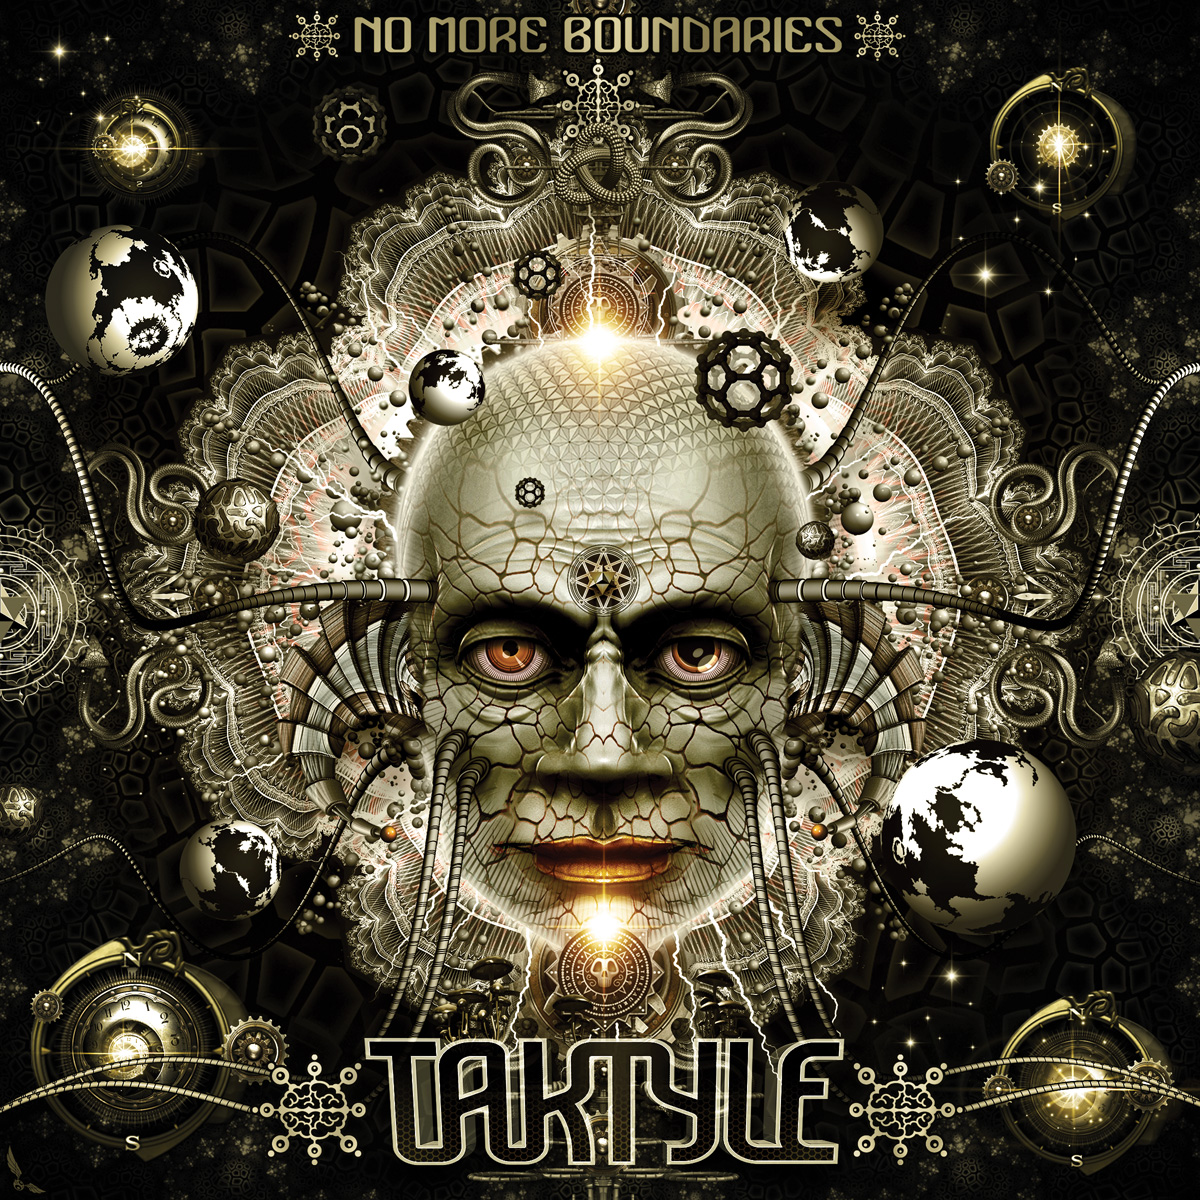 Taktyle-No_More_Boundaries